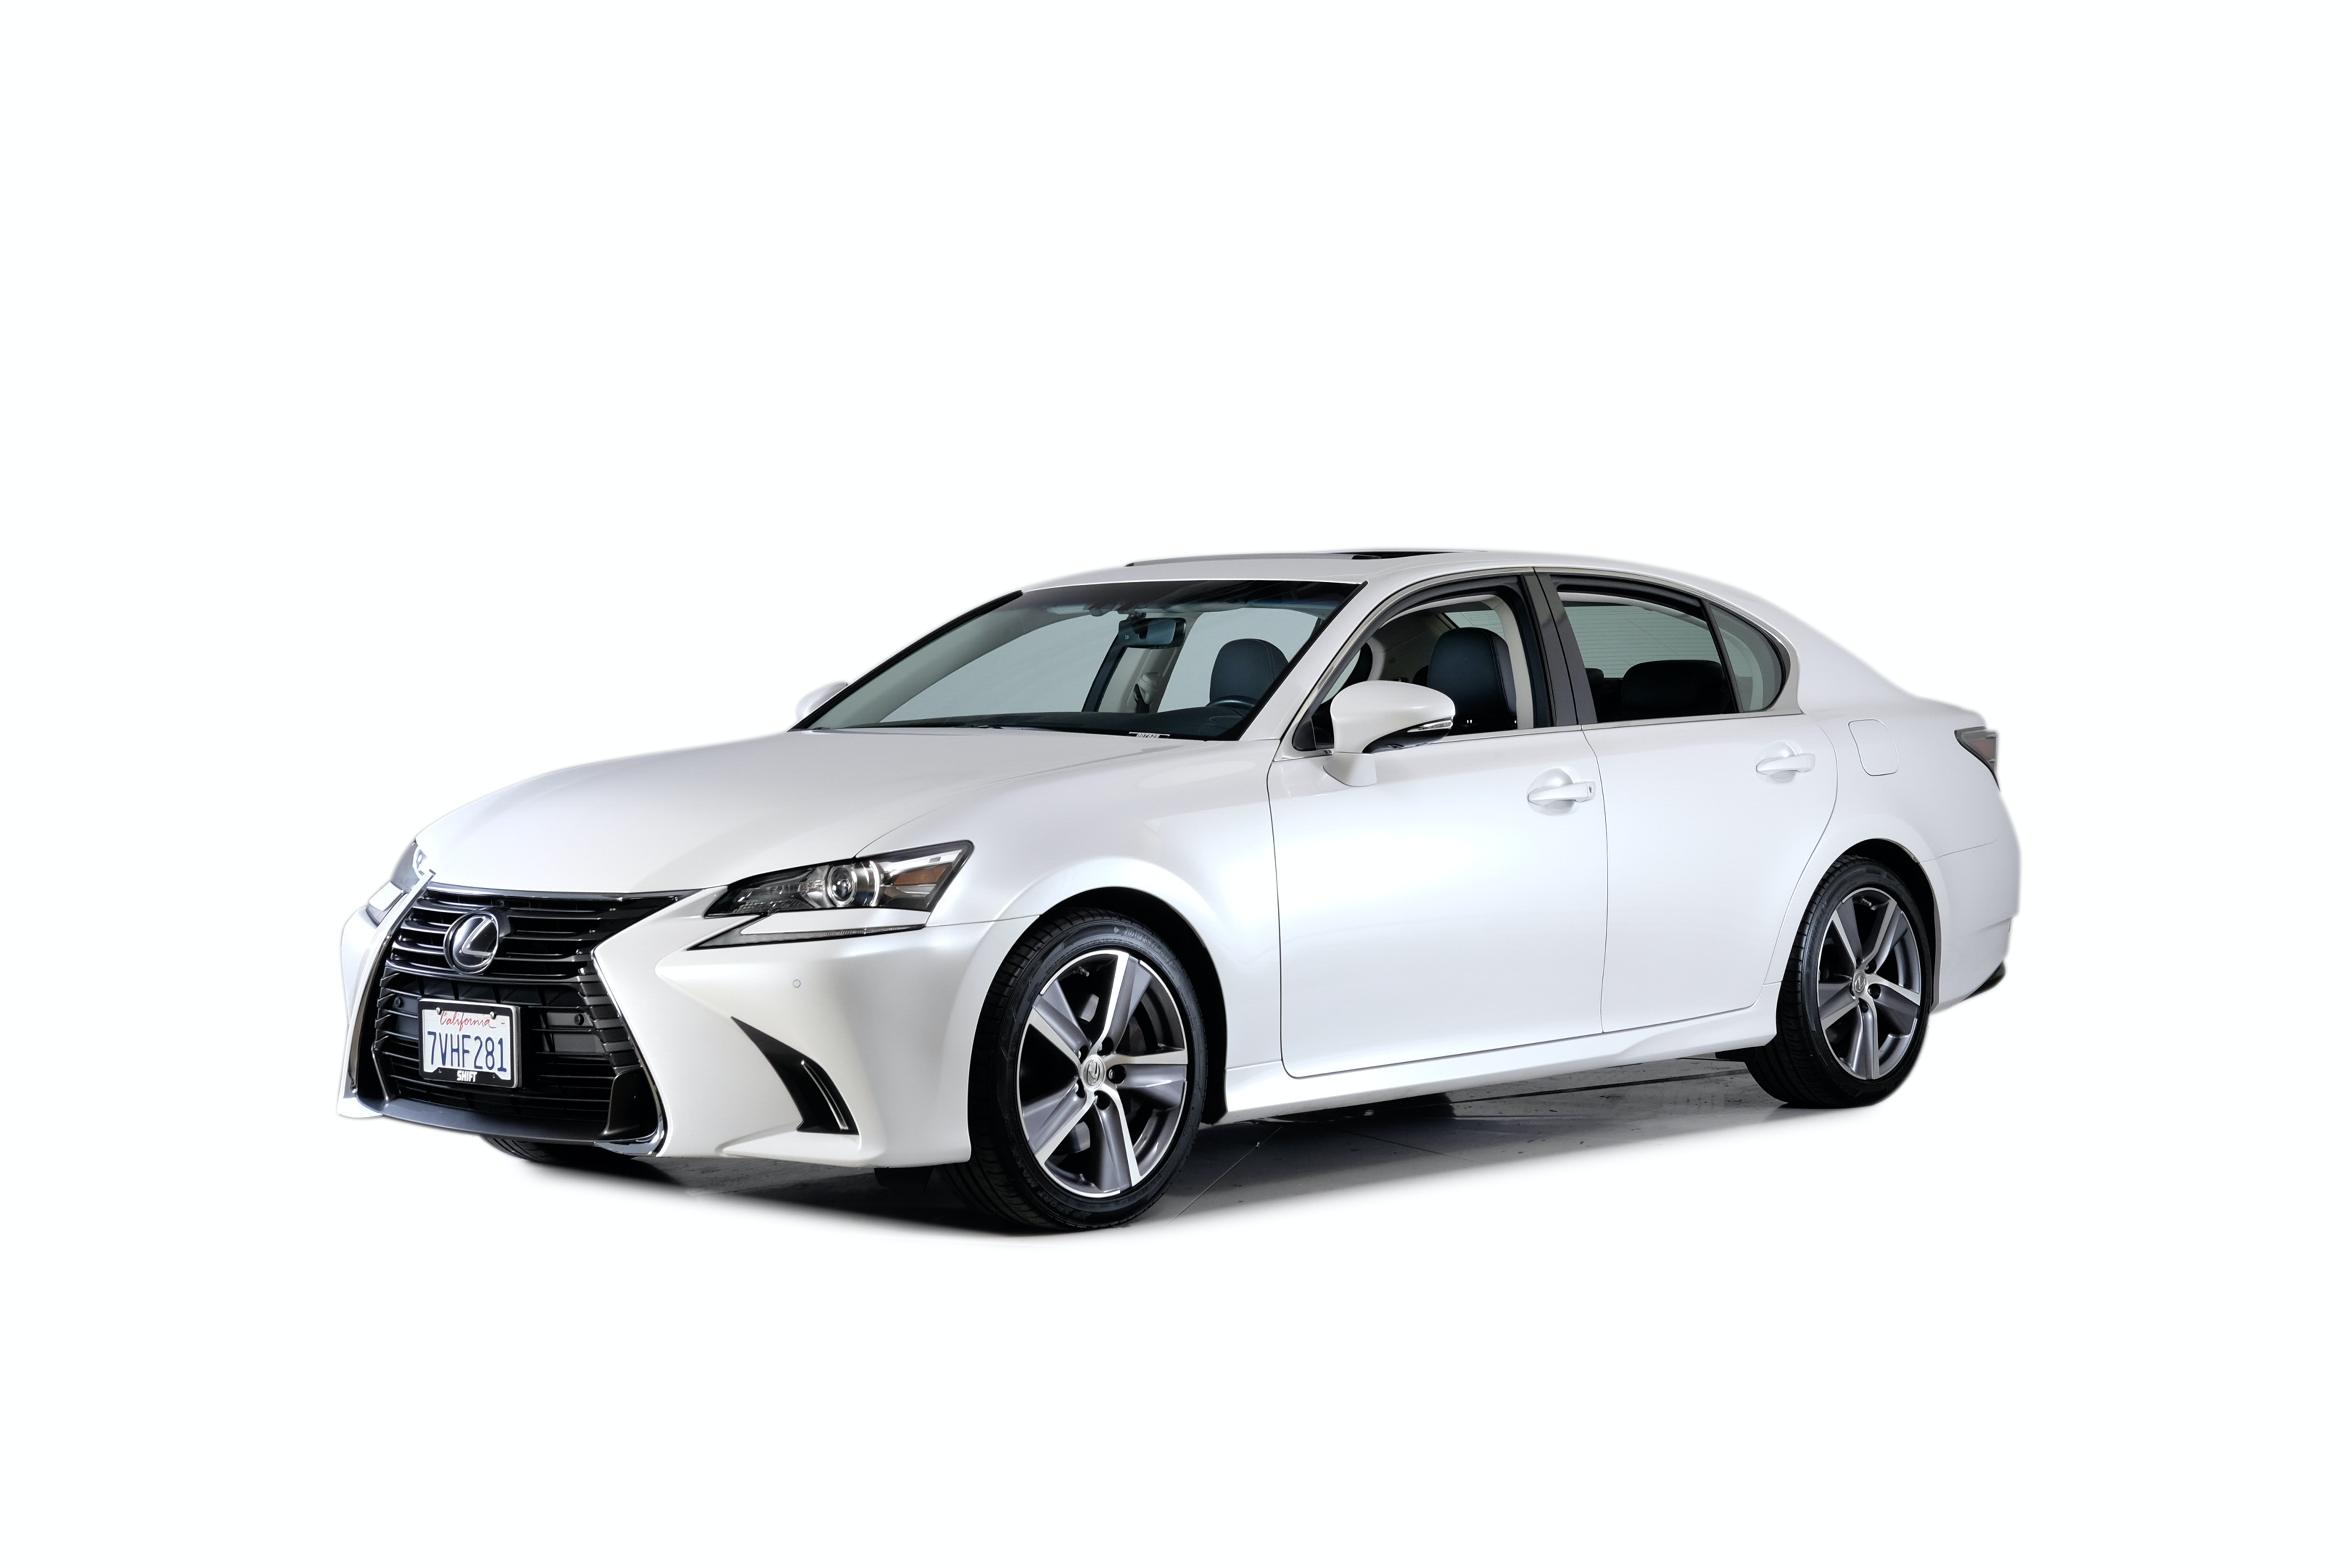 Used Lexus for sale in San Francisco